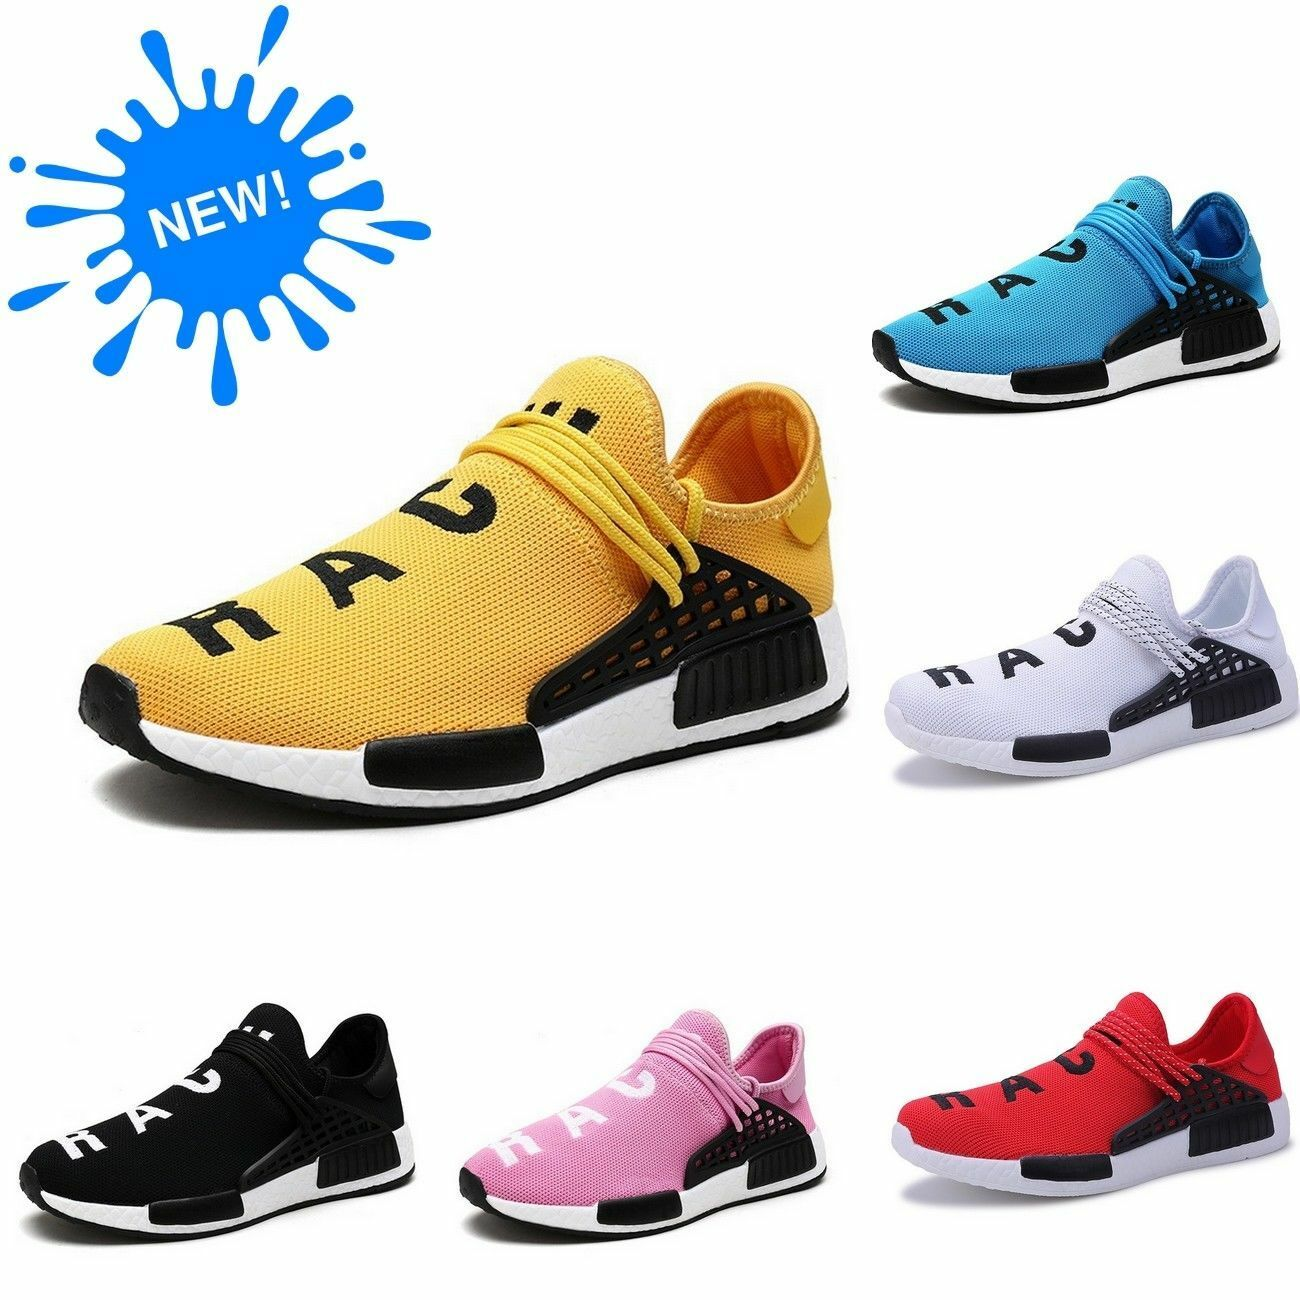 8b79d64f5 Details about New Human Race Sports Running Shoes Top Athletic NMD Mens  Sneakers High Quality